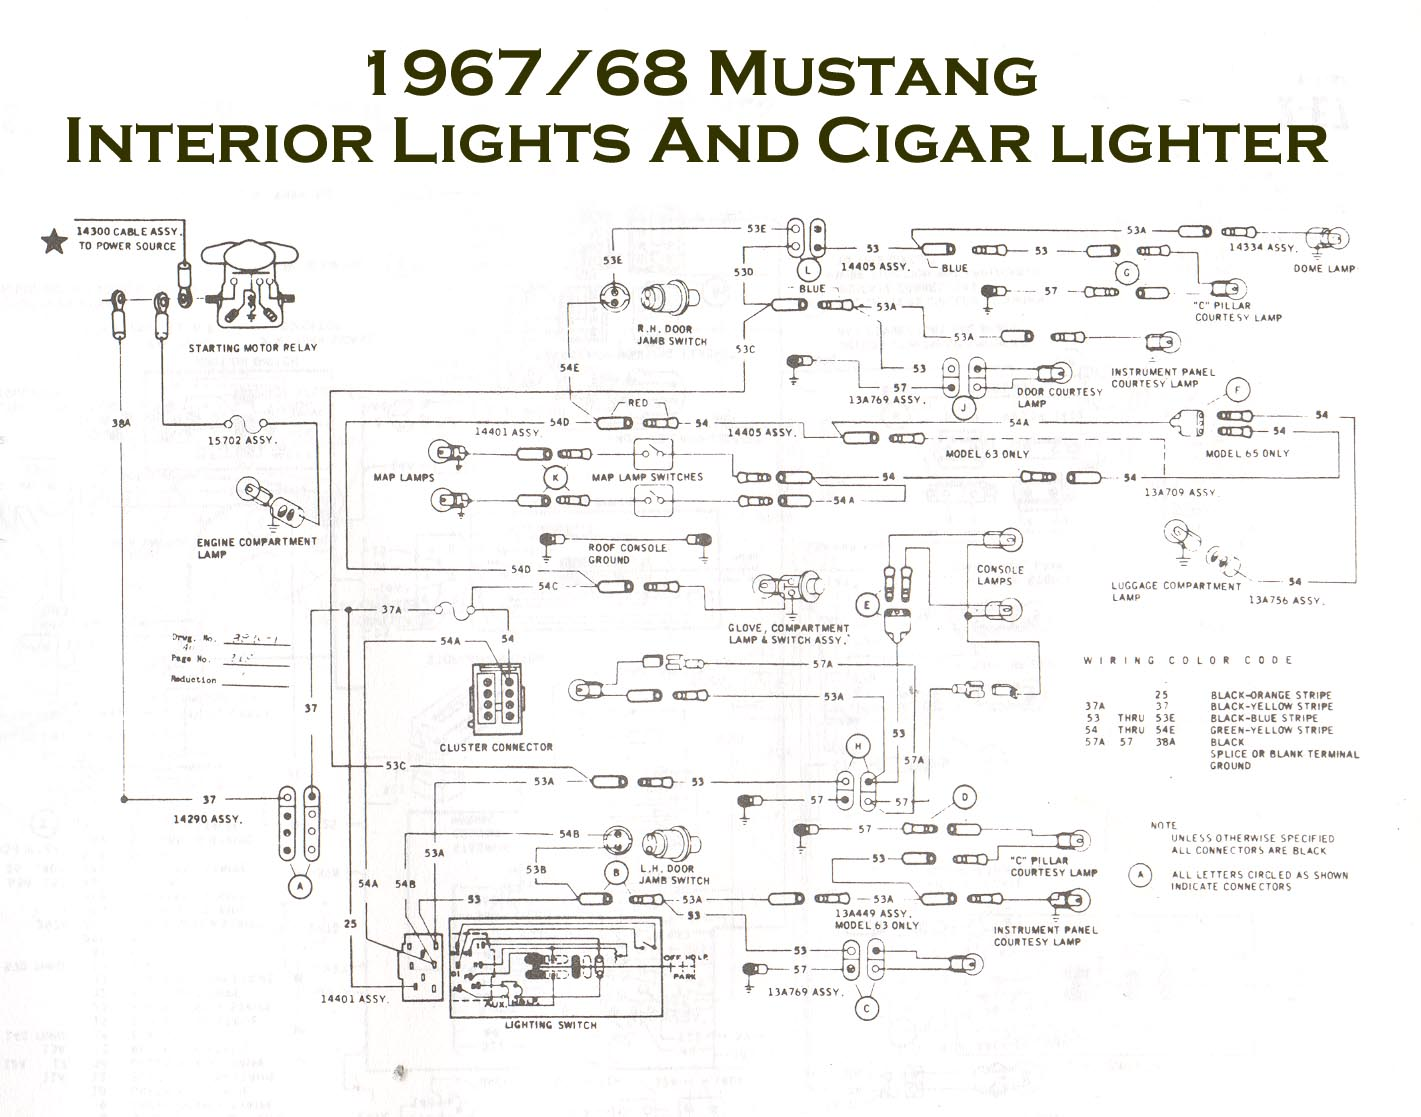 Vintage Mustang Wiring Diagrams on alfa romeo transaxle, alfa romeo seats, alfa romeo radio wiring, alfa romeo spider, alfa romeo steering, alfa romeo blueprints, alfa romeo drawings, alfa romeo transmission, alfa romeo rear axle, alfa romeo chassis, alfa romeo paint codes, alfa romeo accessories, alfa romeo body, alfa romeo all models, alfa romeo repair manuals, 1995 ford f-250 transmission diagrams, alfa romeo engine, alfa romeo cylinder head,